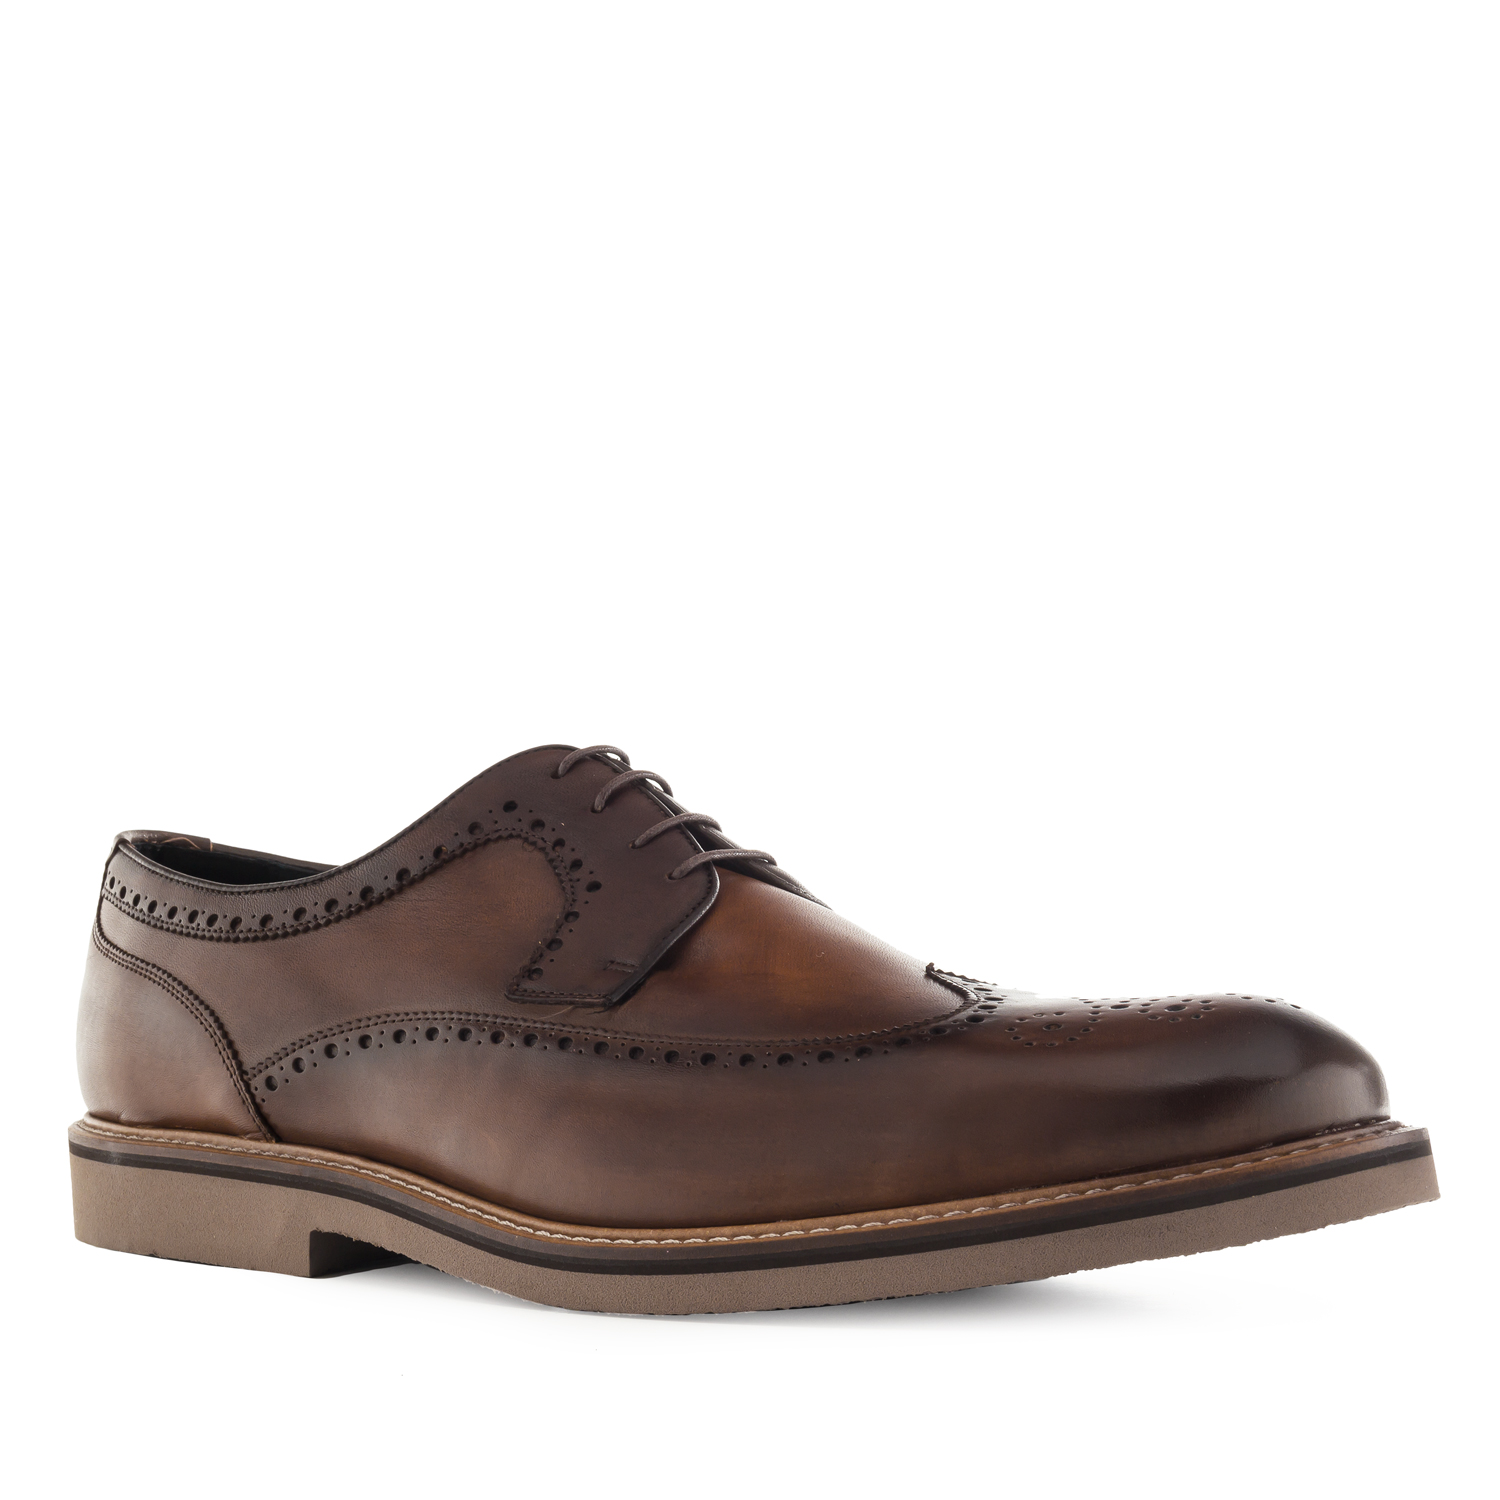 Oxford style Shoes in Brown Leather